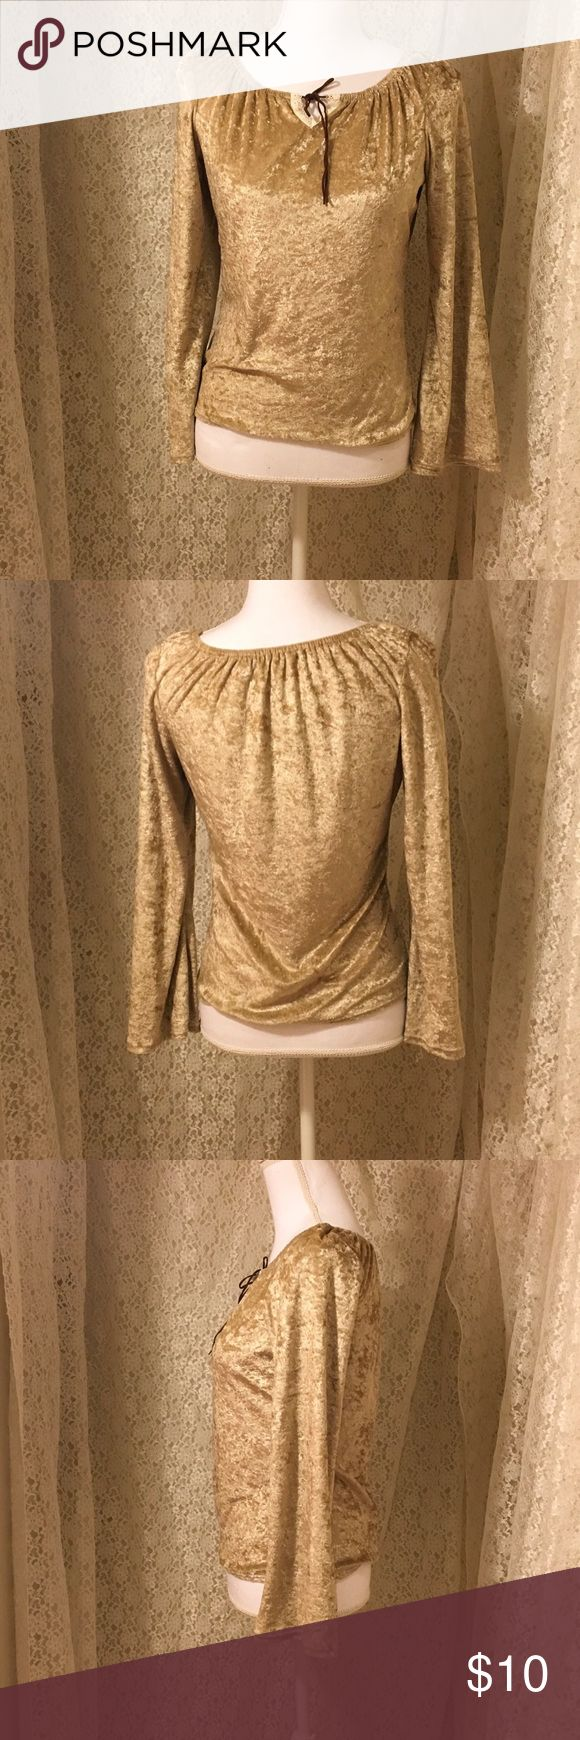 """Gold Long Sleeves Top For Fall Never been worn Top bell sleeves,size tag was cut off,measures 15"""" from armpit to armpit, 21"""" length, light velvet material Tops Blouses"""